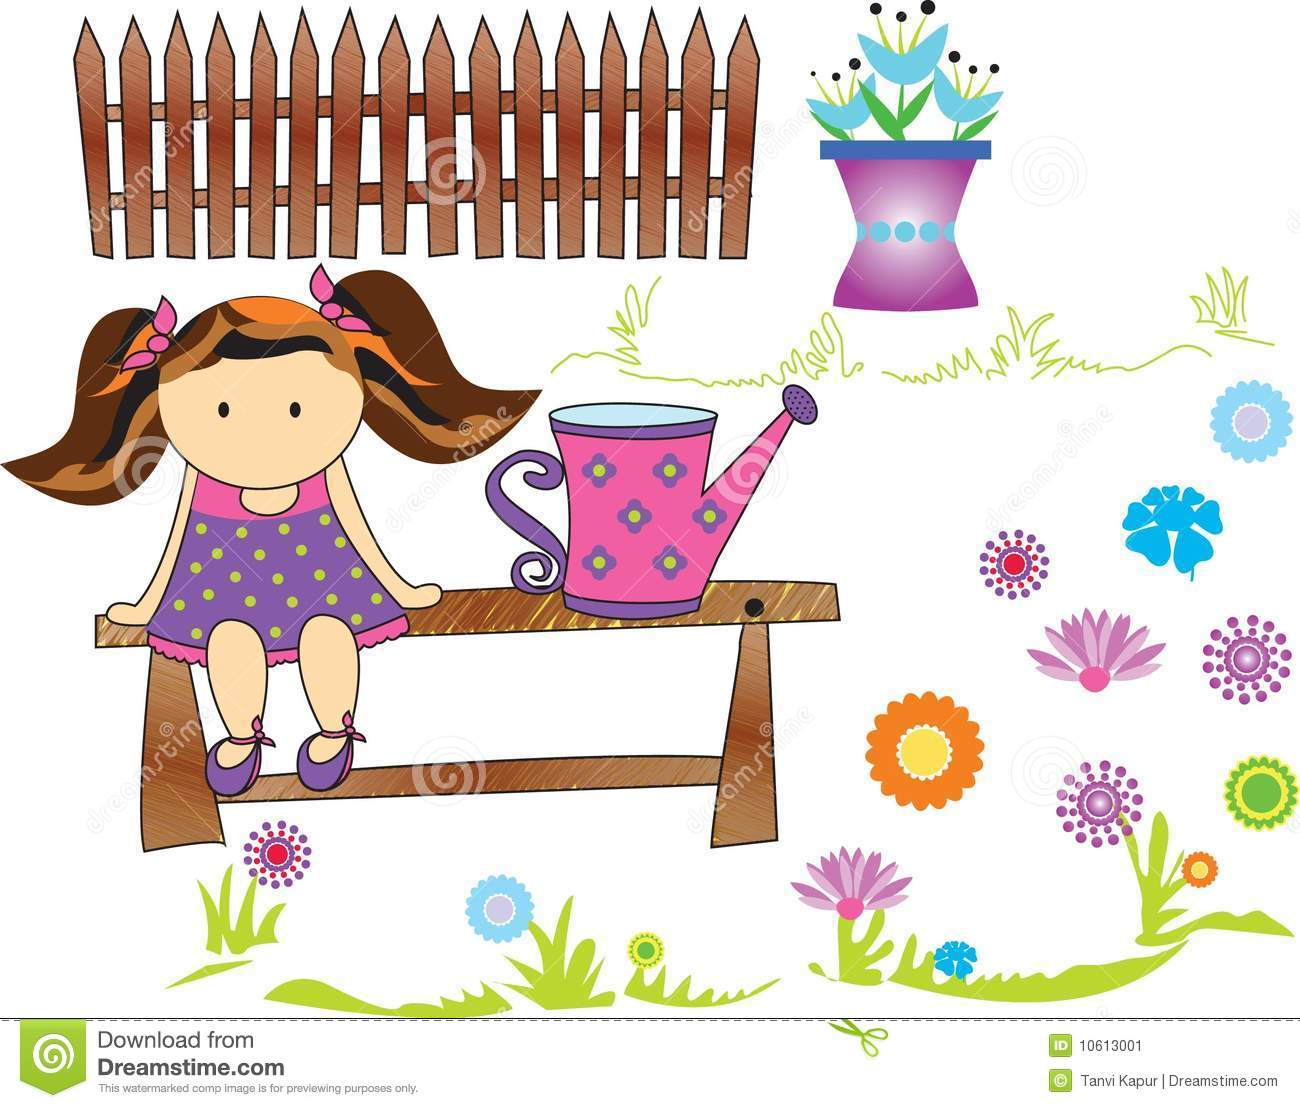 garden doll stock image image 10613001 download